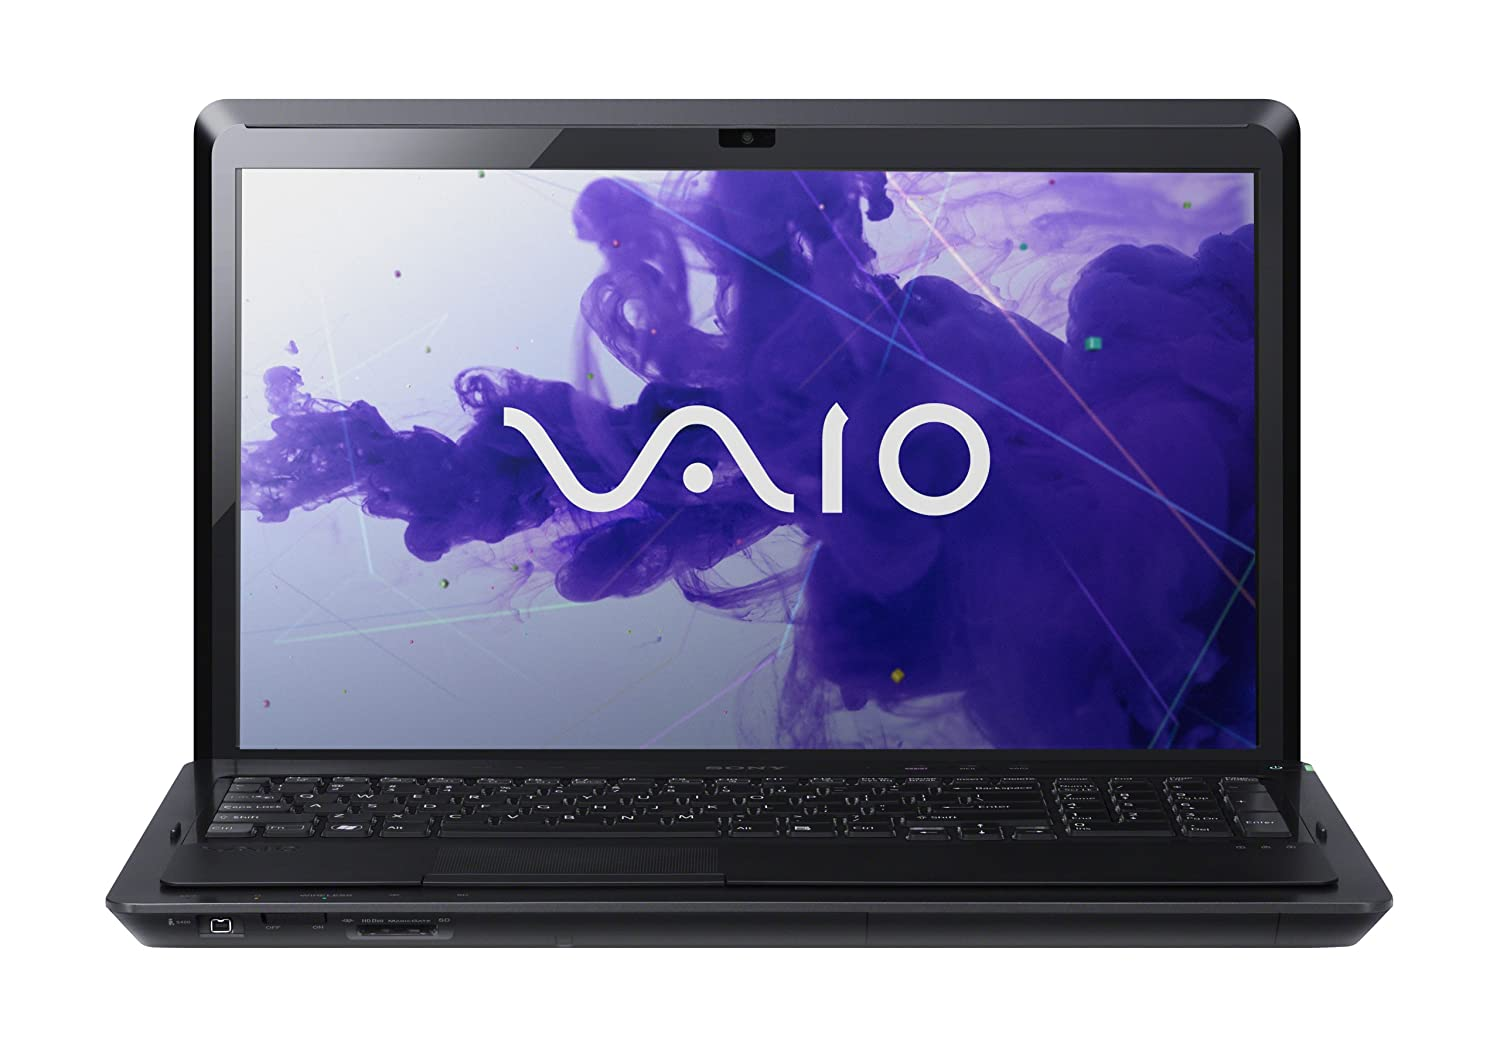 SONY VAIO VPCF233FX WINDOWS 7 X64 DRIVER